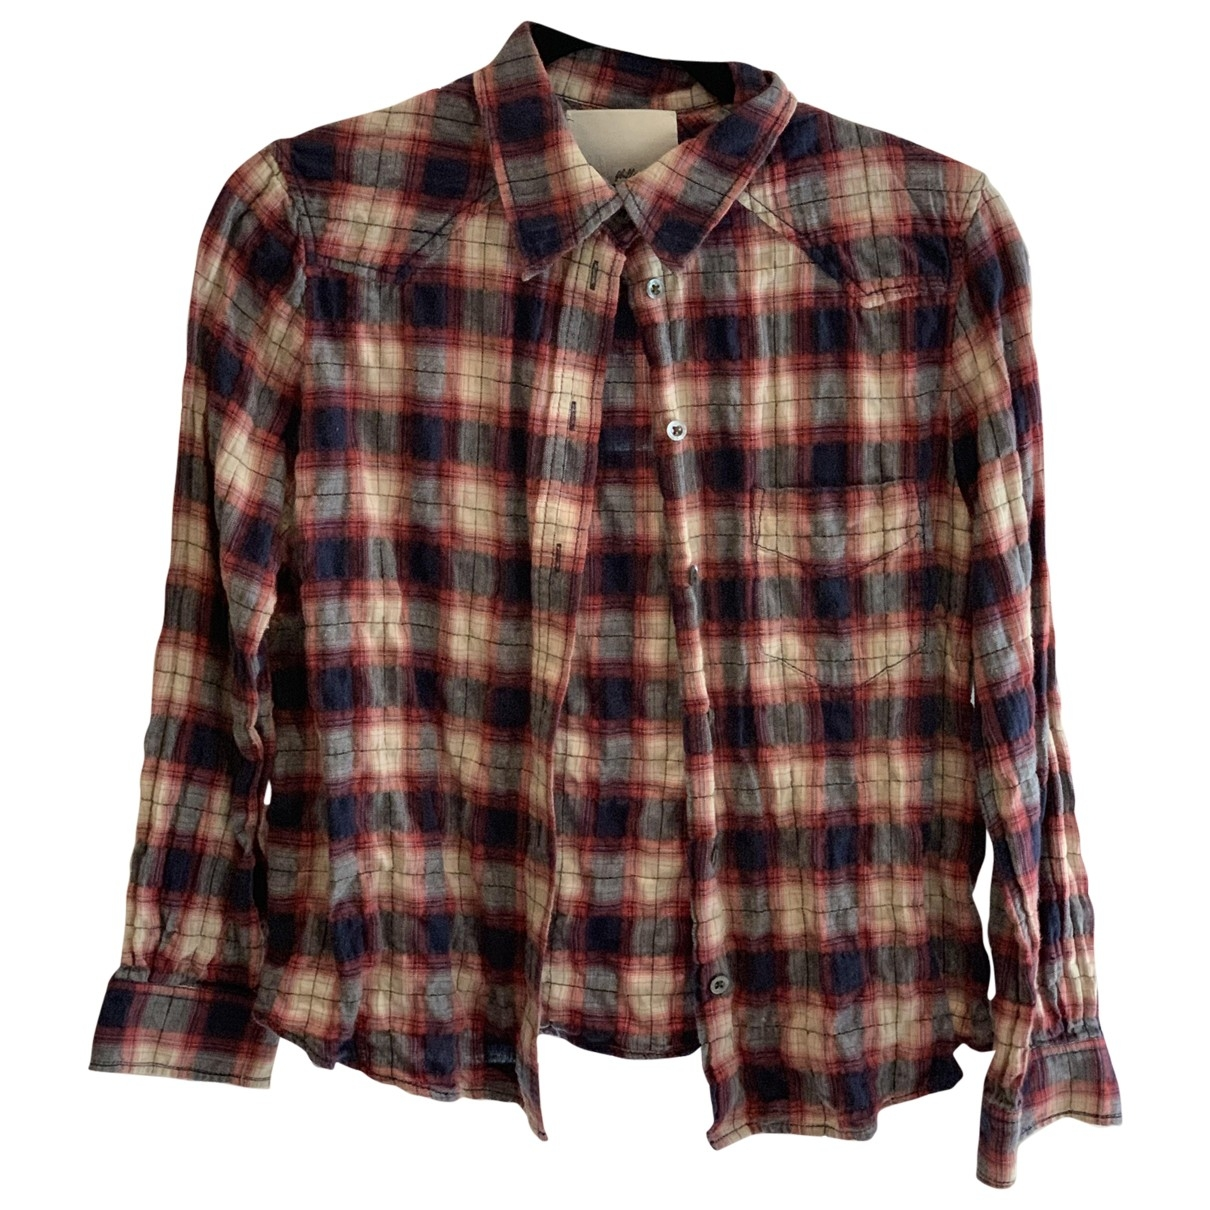 3.1 Phillip Lim \N Red Cotton  top for Women 4 US